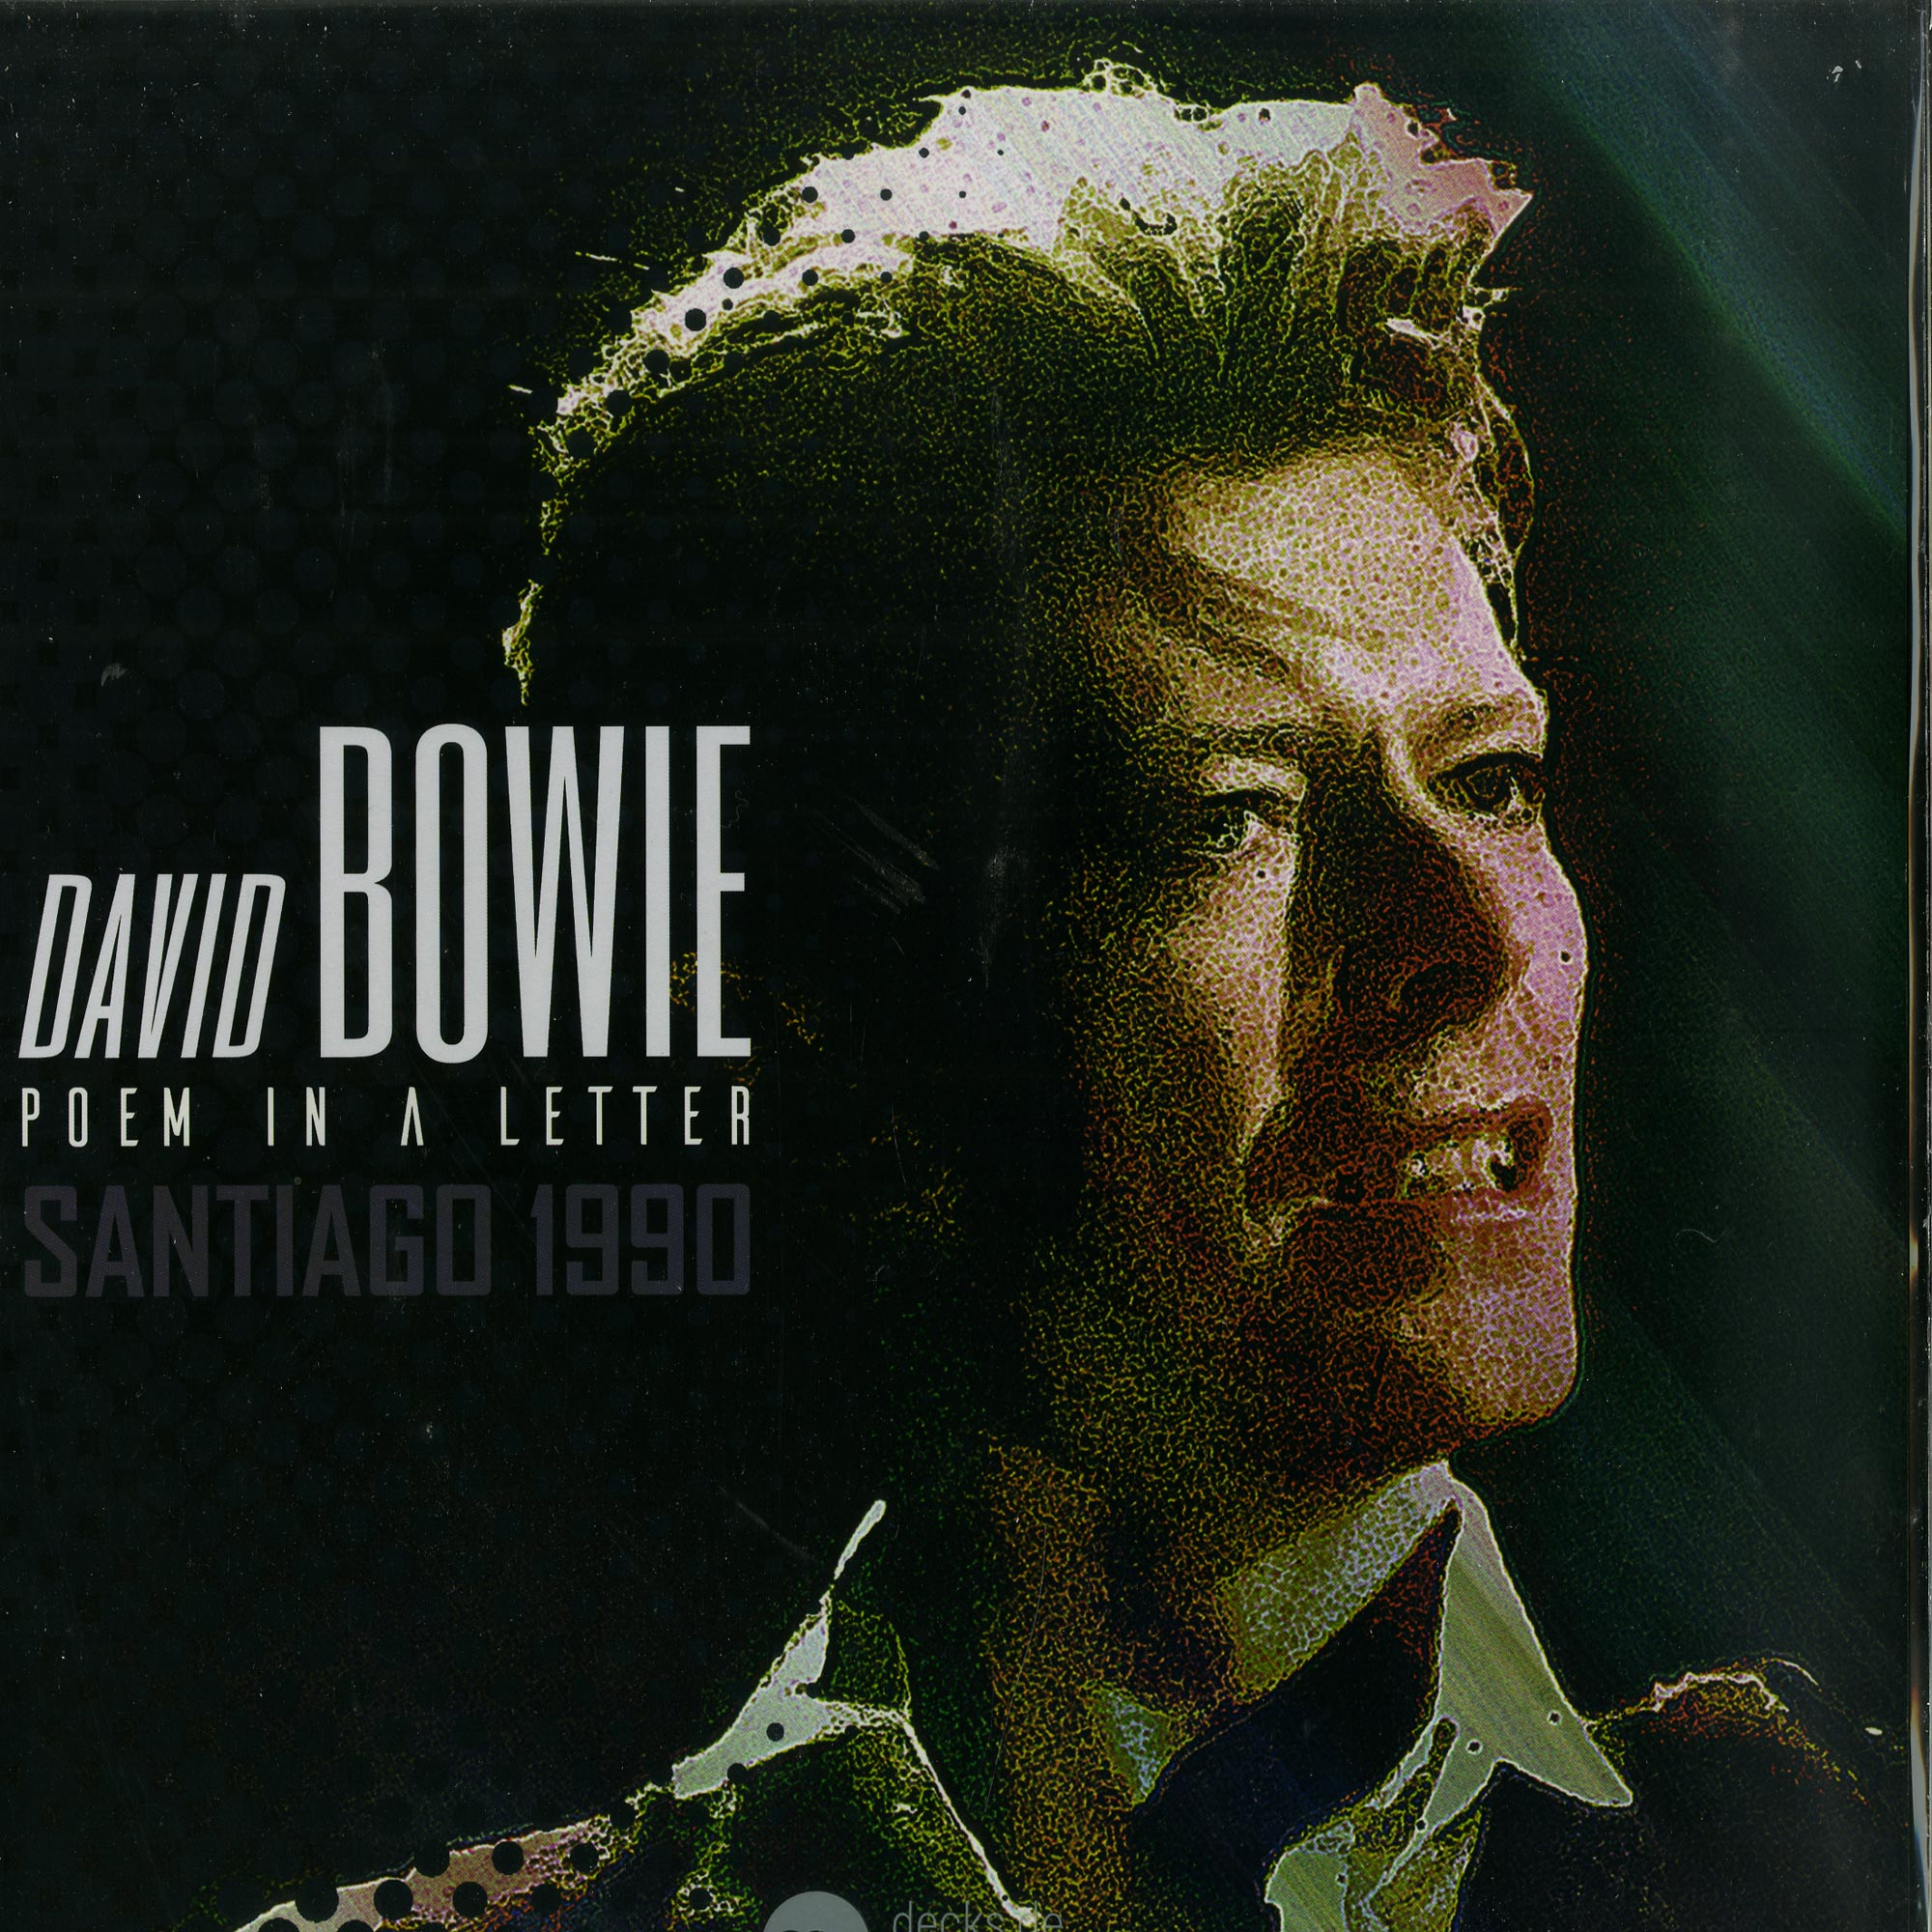 David Bowie - POEM IN A LETTER